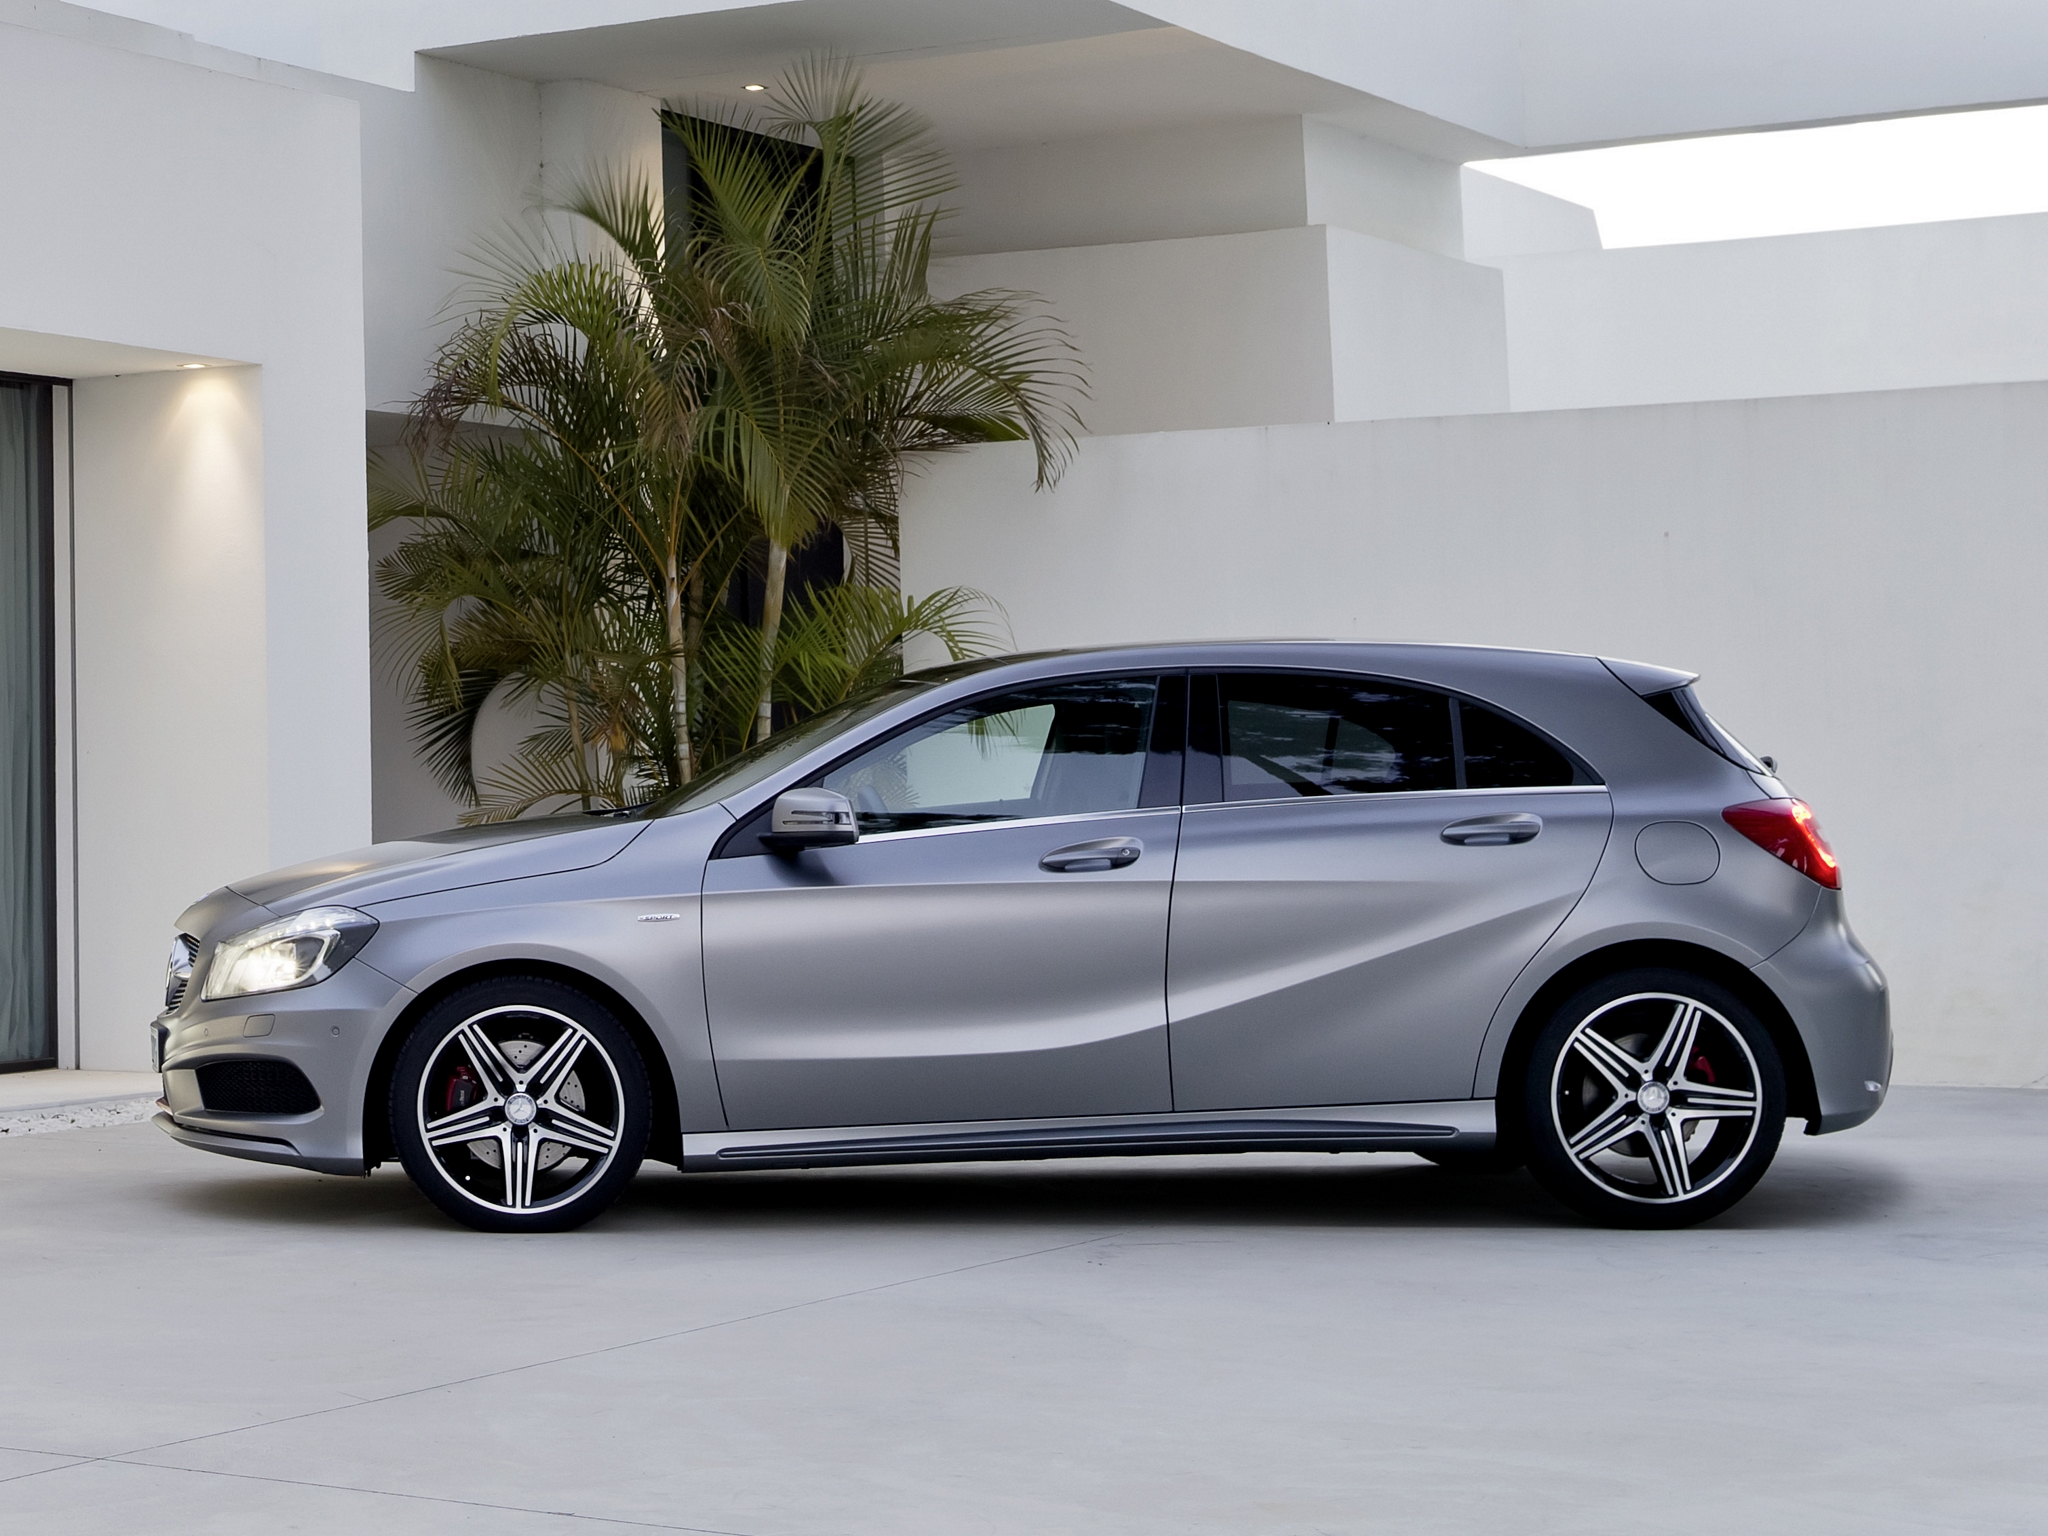 Mercedes benz a250 photos photogallery with 6 pics for Mercedes benz of minneapolis